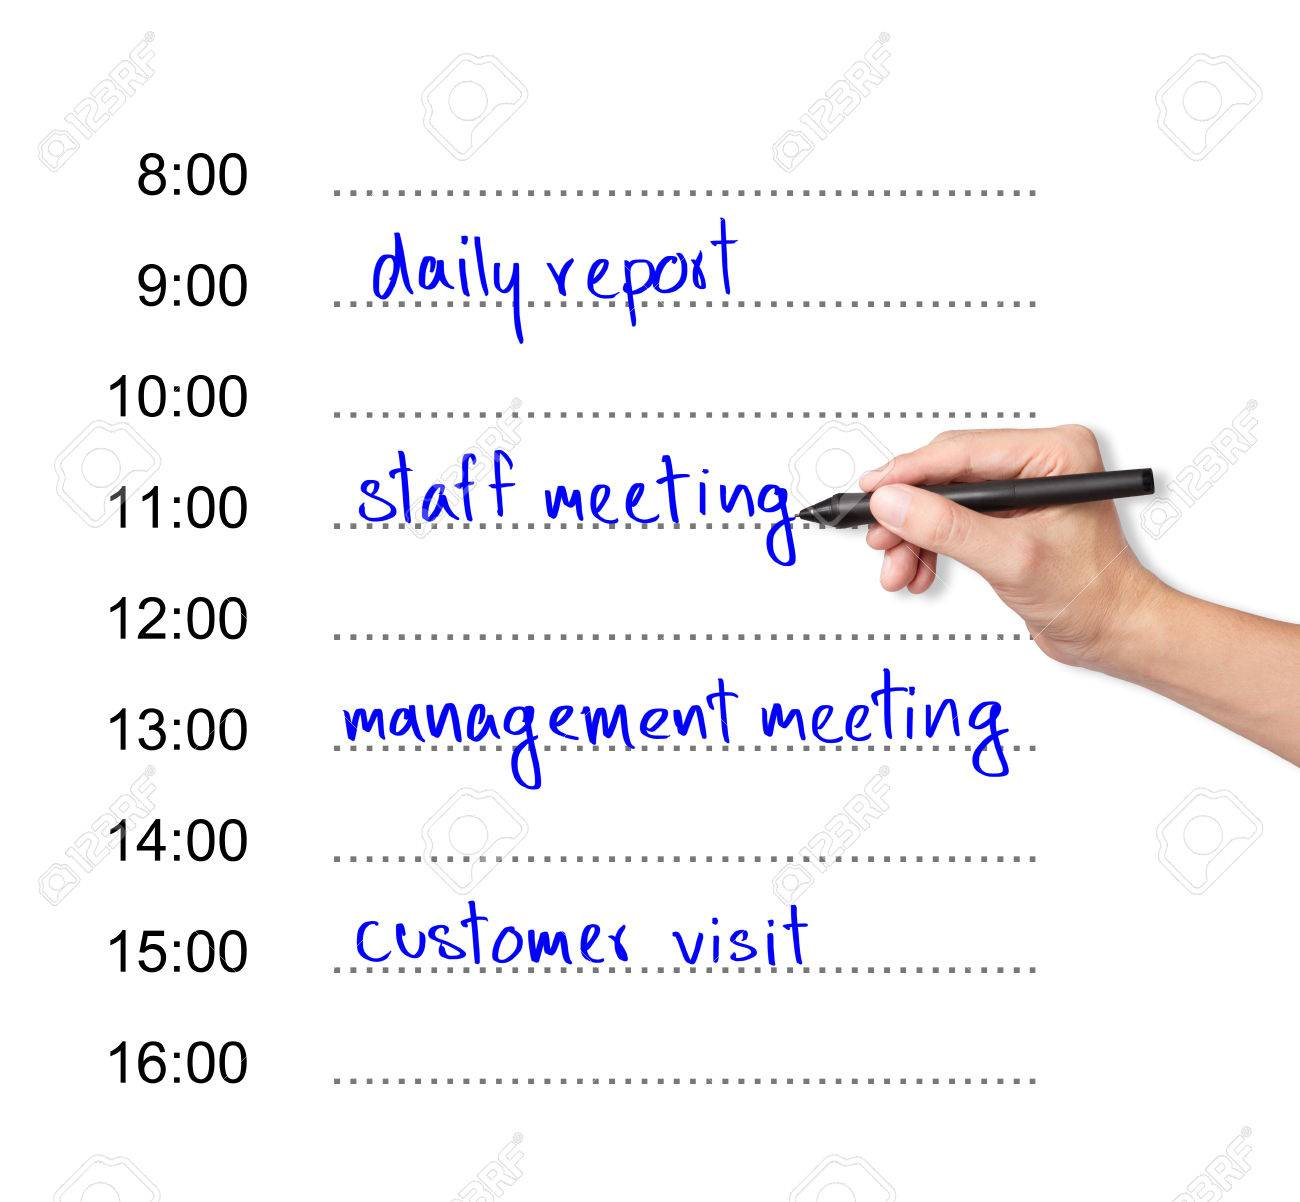 Business Hand Writing Daily Appointment Schedule Stock Photo ...